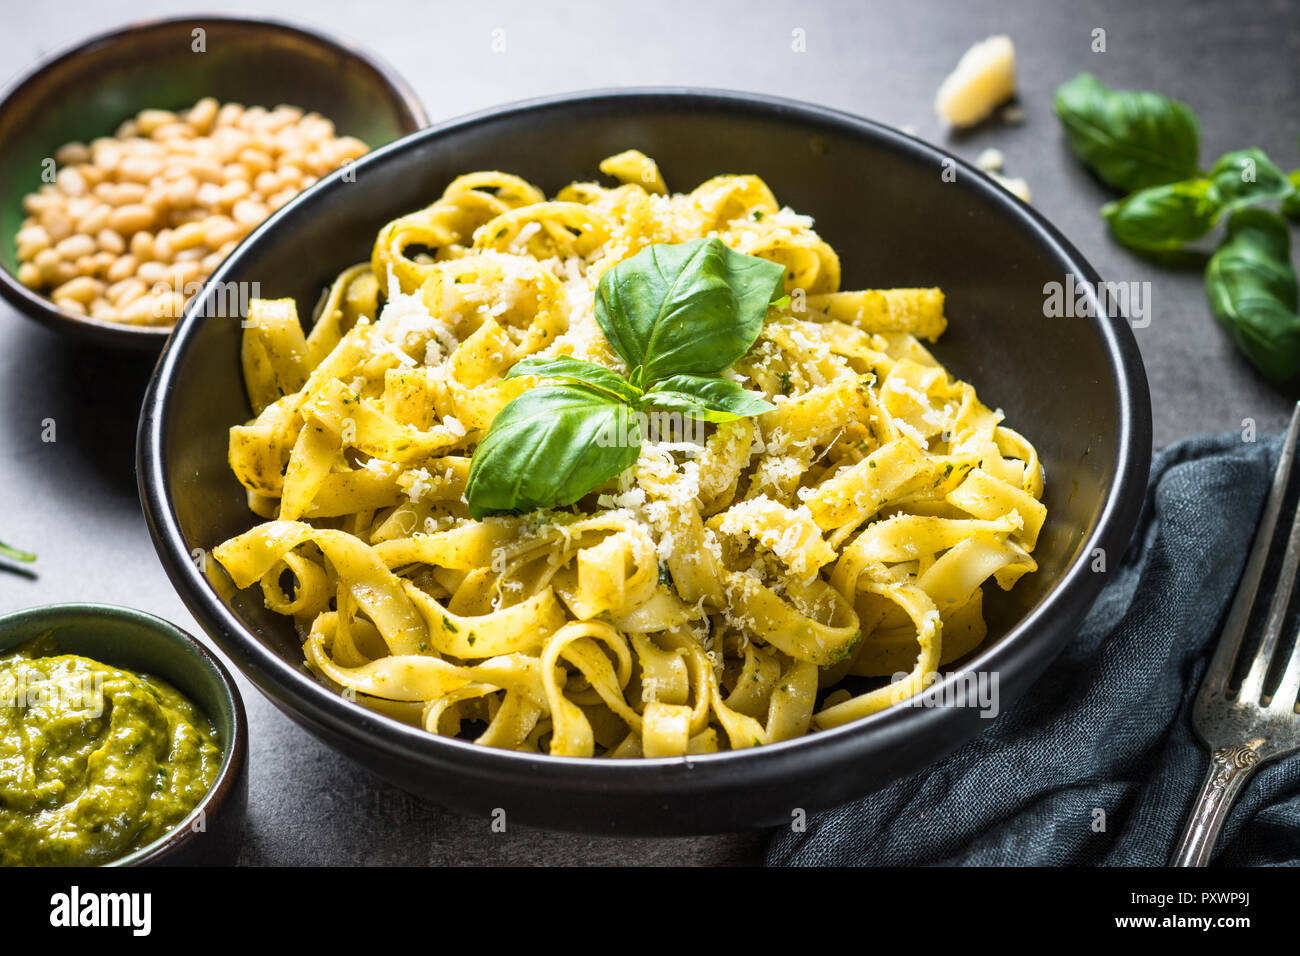 Tagliatelle pasta with pesto sauce and parmesan. - Stock Image